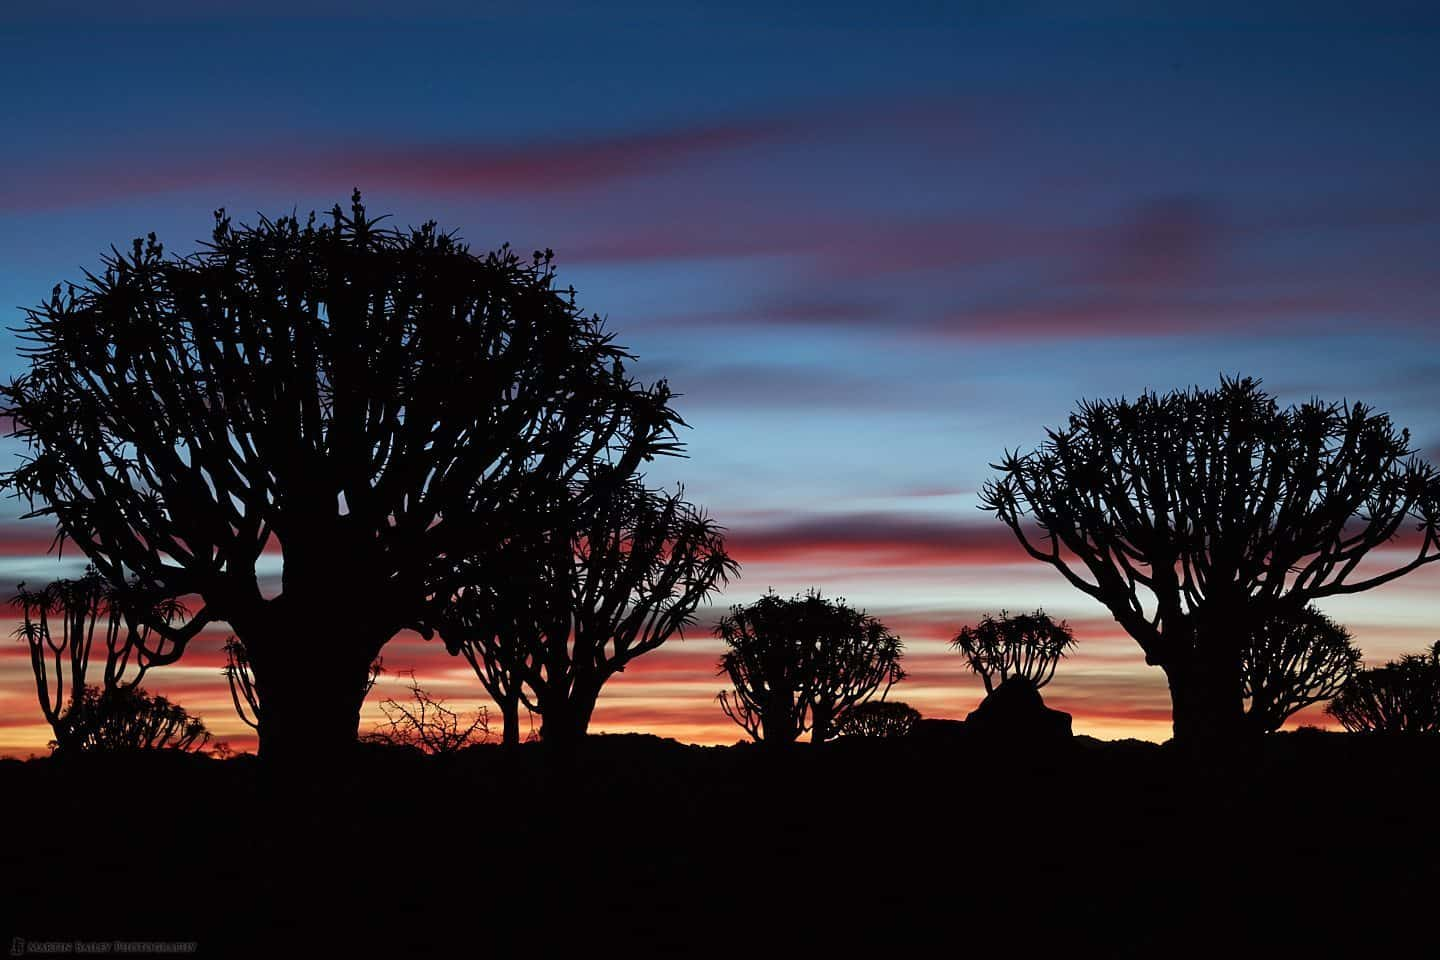 Dusk at Quiver Tree Forest :: 夕暮れの矢筒の木の森